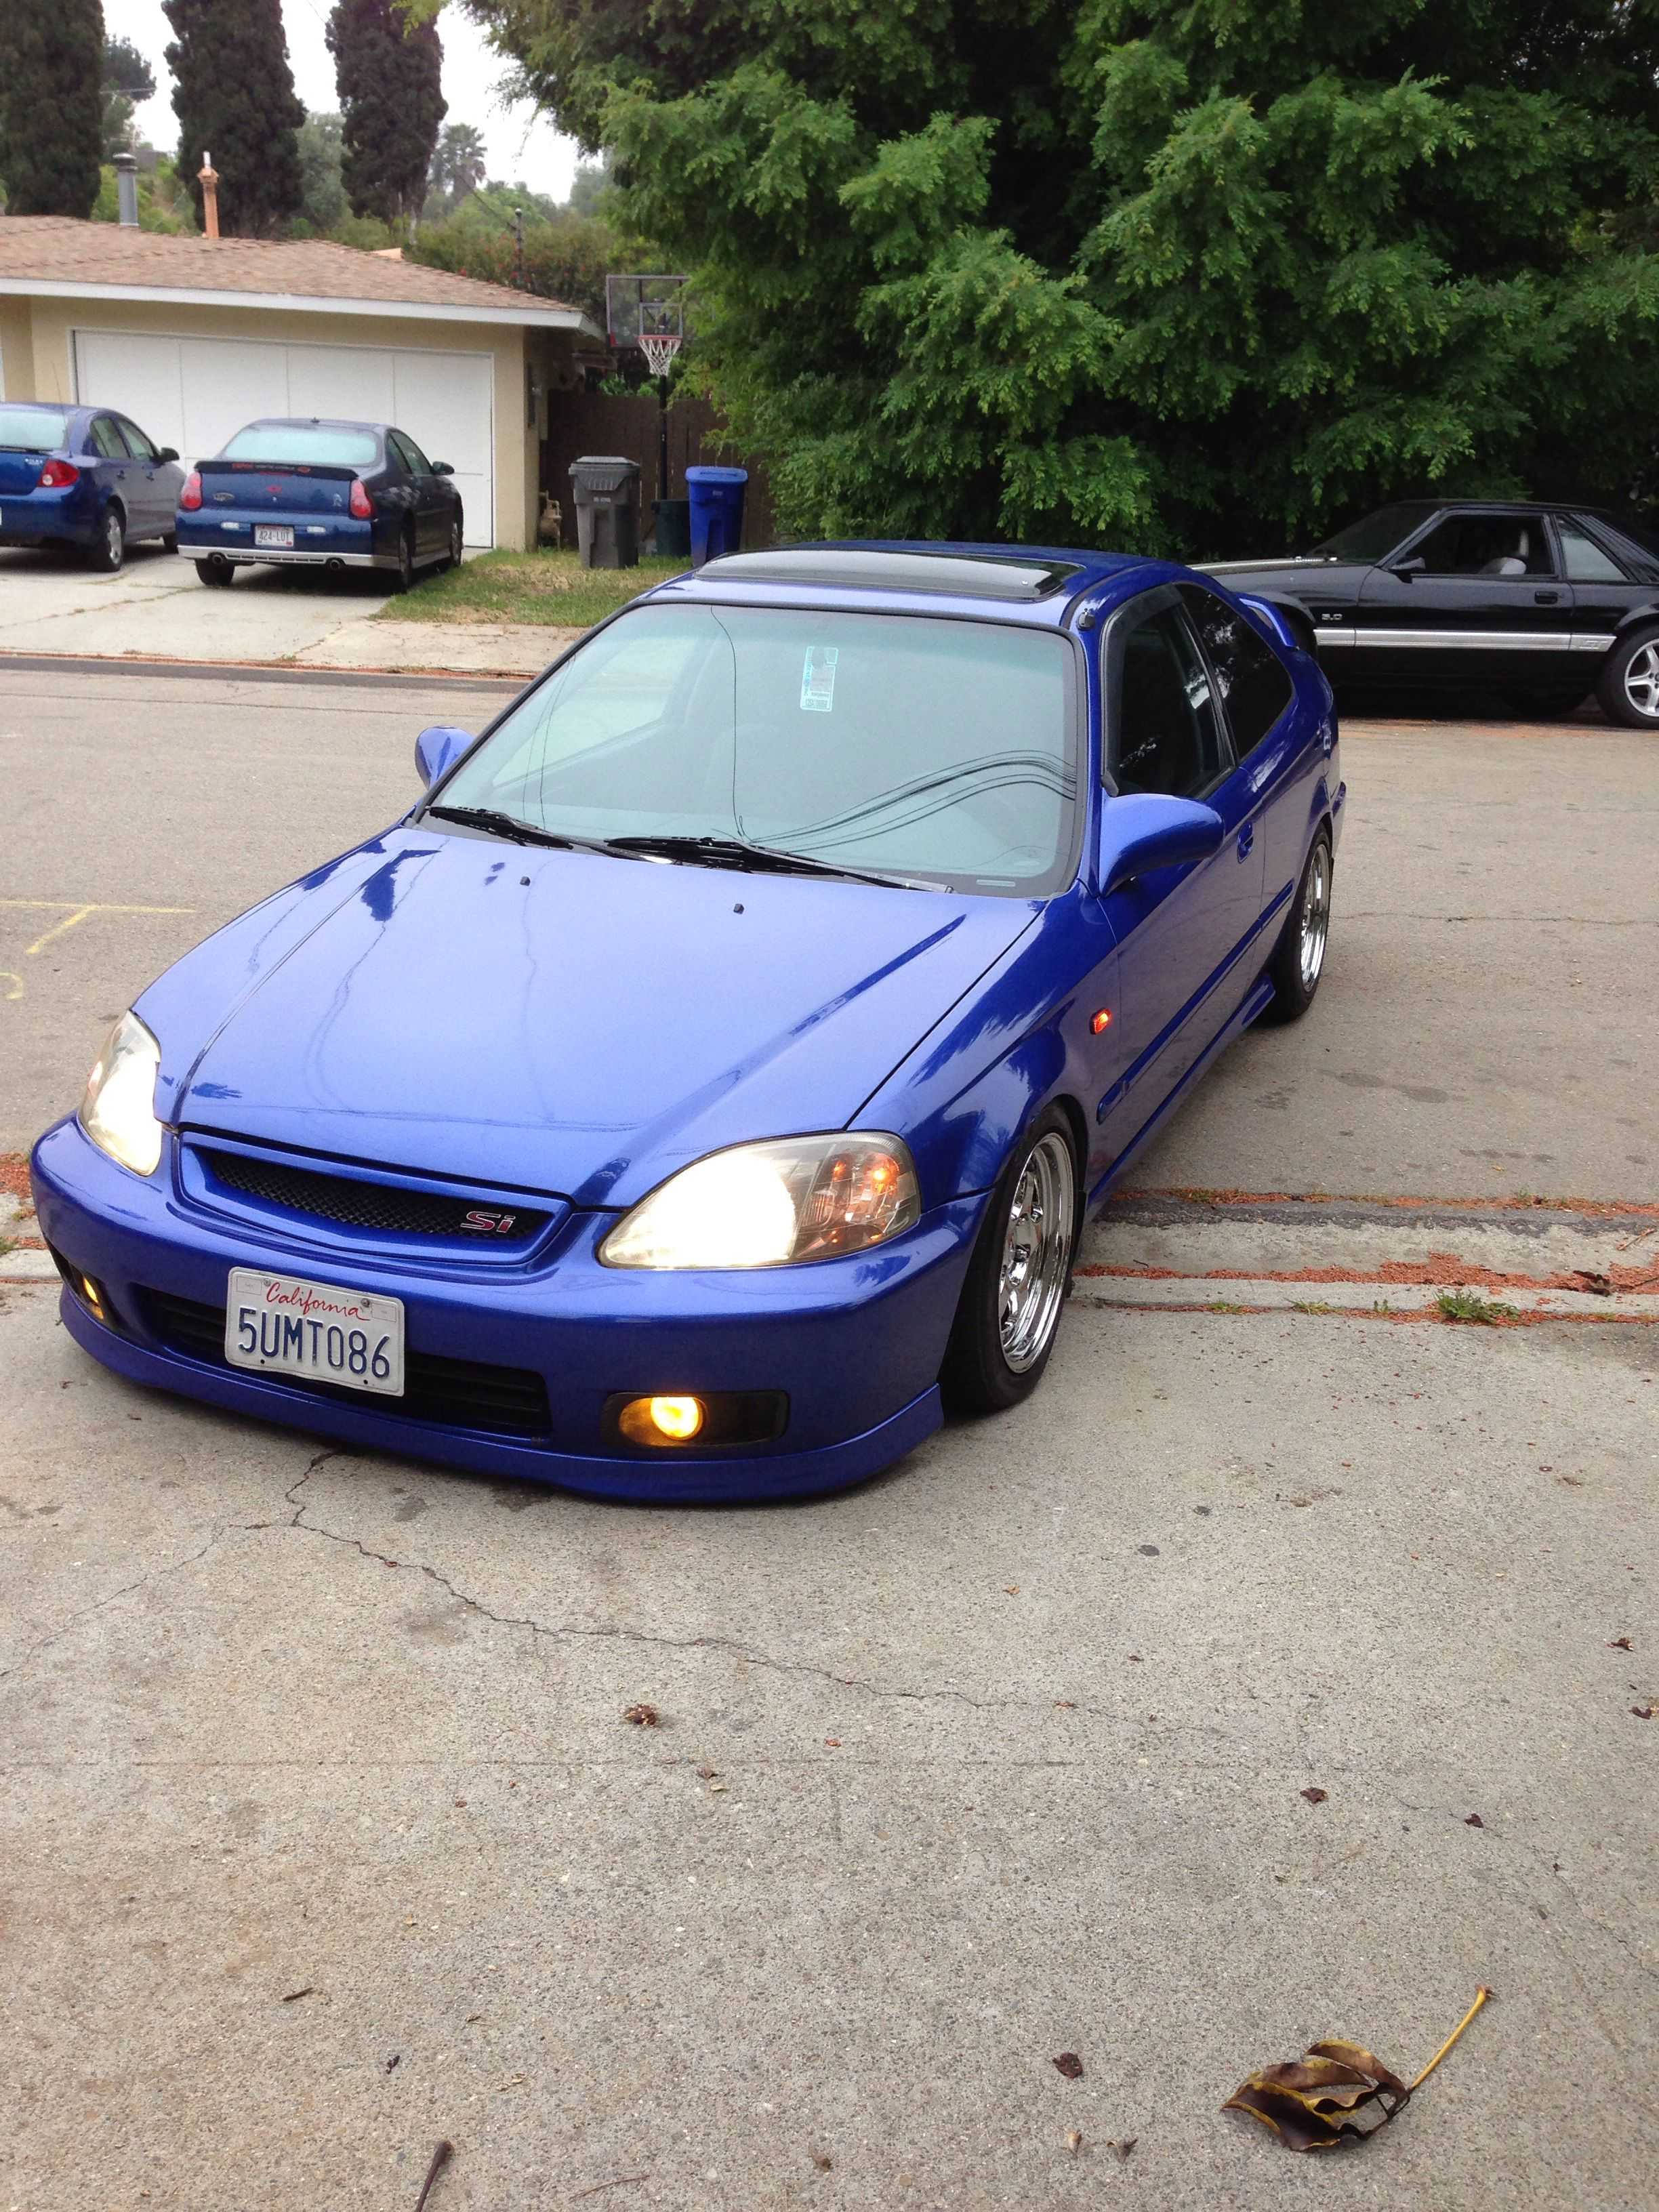 Honda Civic Si 2000 Modified : honda, civic, modified, Honda, Civic, Hatchback,, Vtec,, Coupe